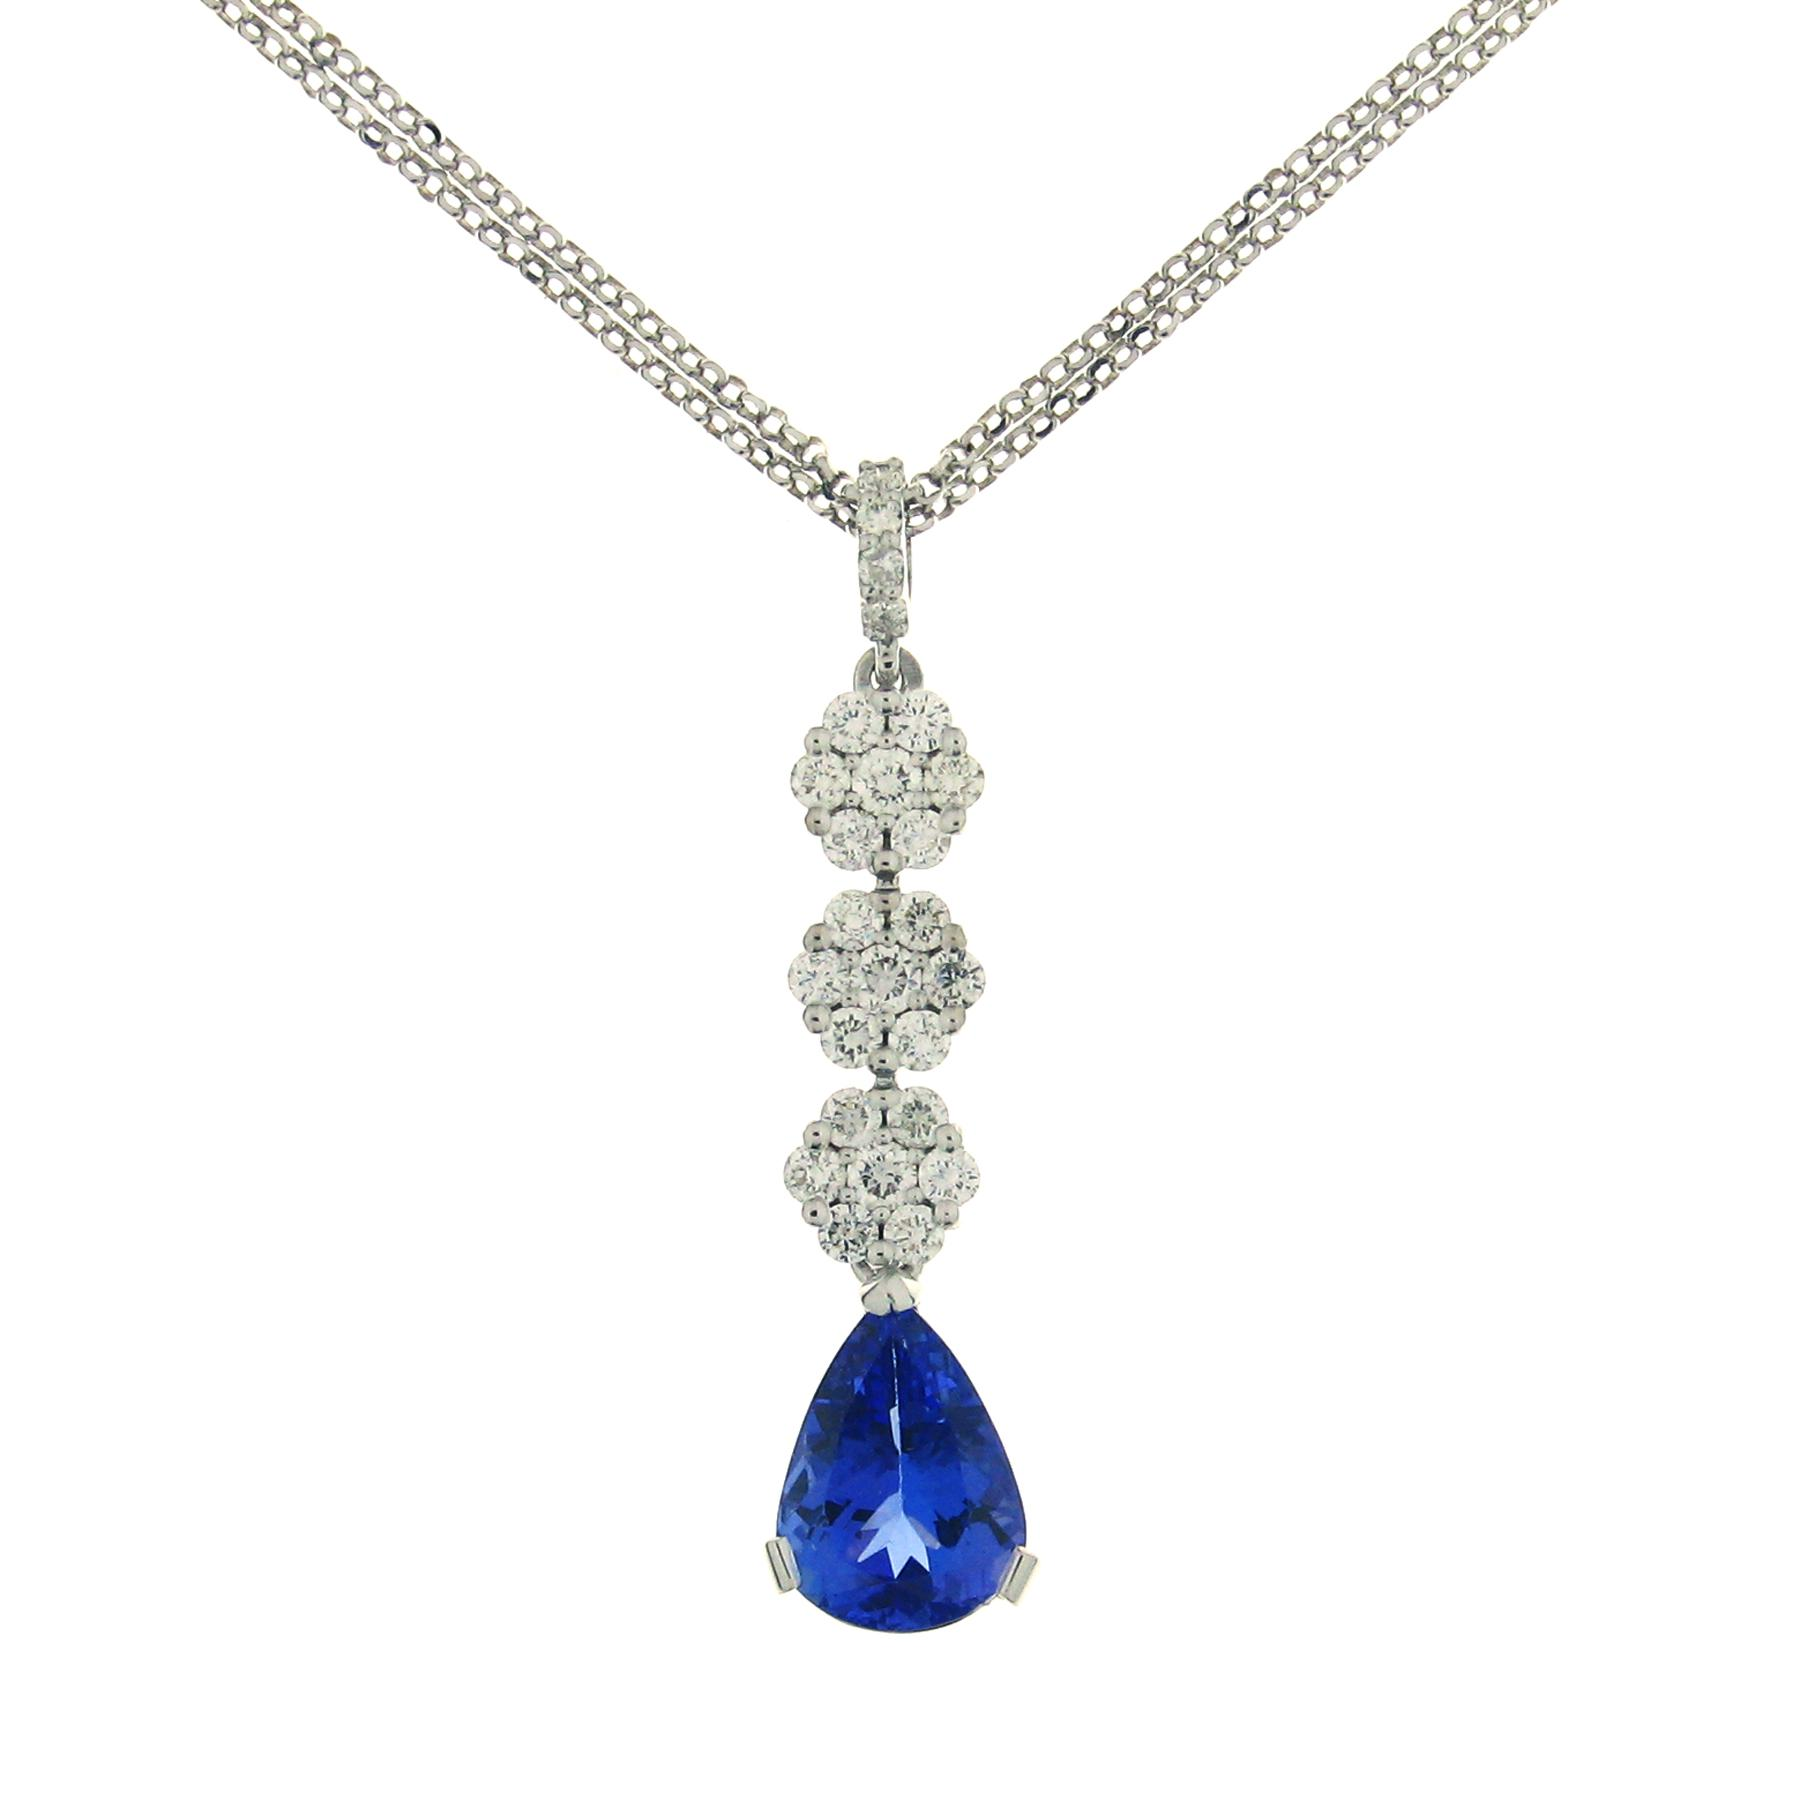 Gival 18ct White Gold Diamond & Tanzanite Pendant 3872